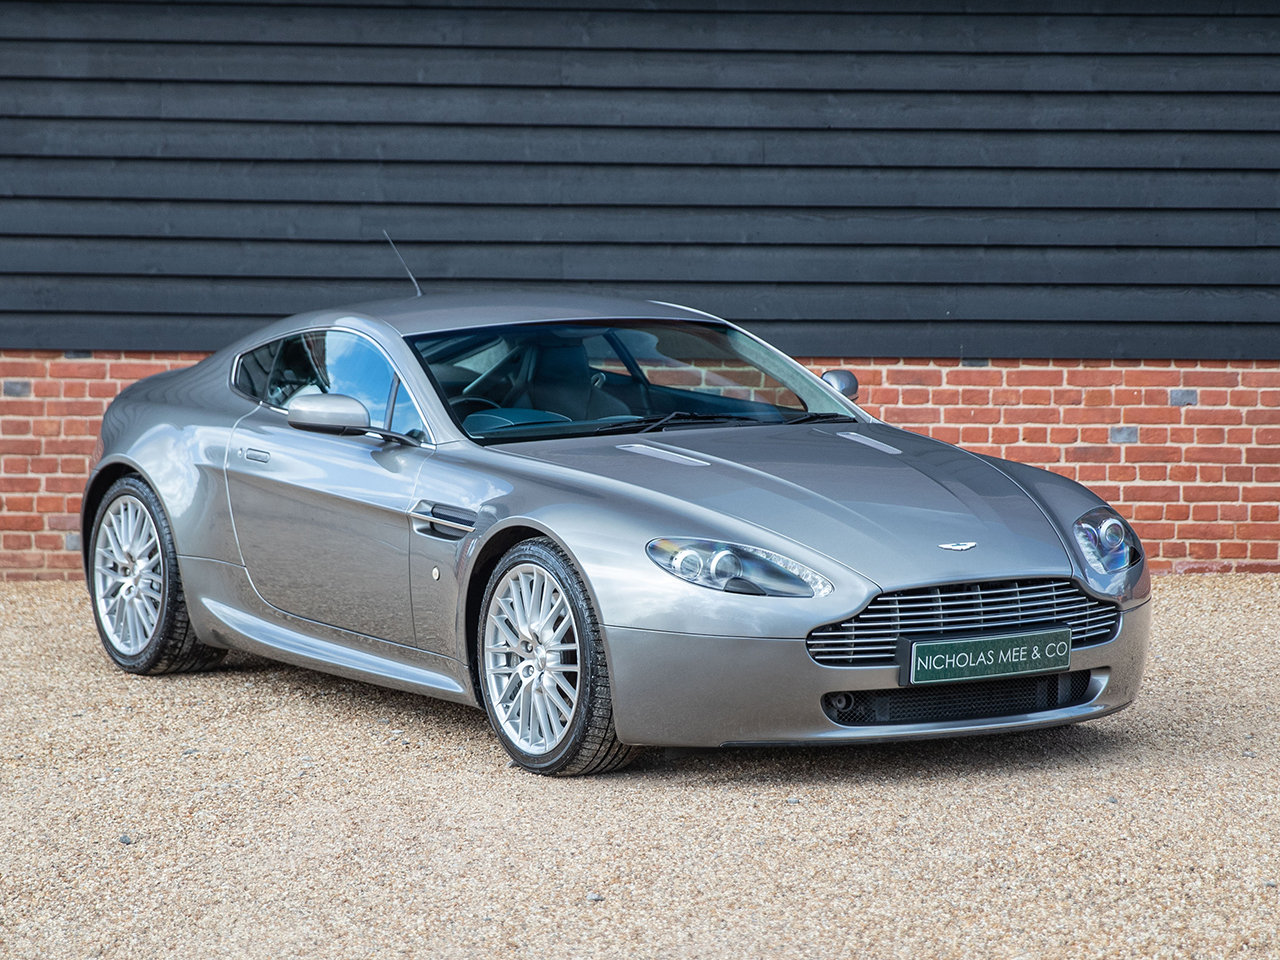 2006 Aston Martin V8 Vantage For Sale (picture 1 of 6)